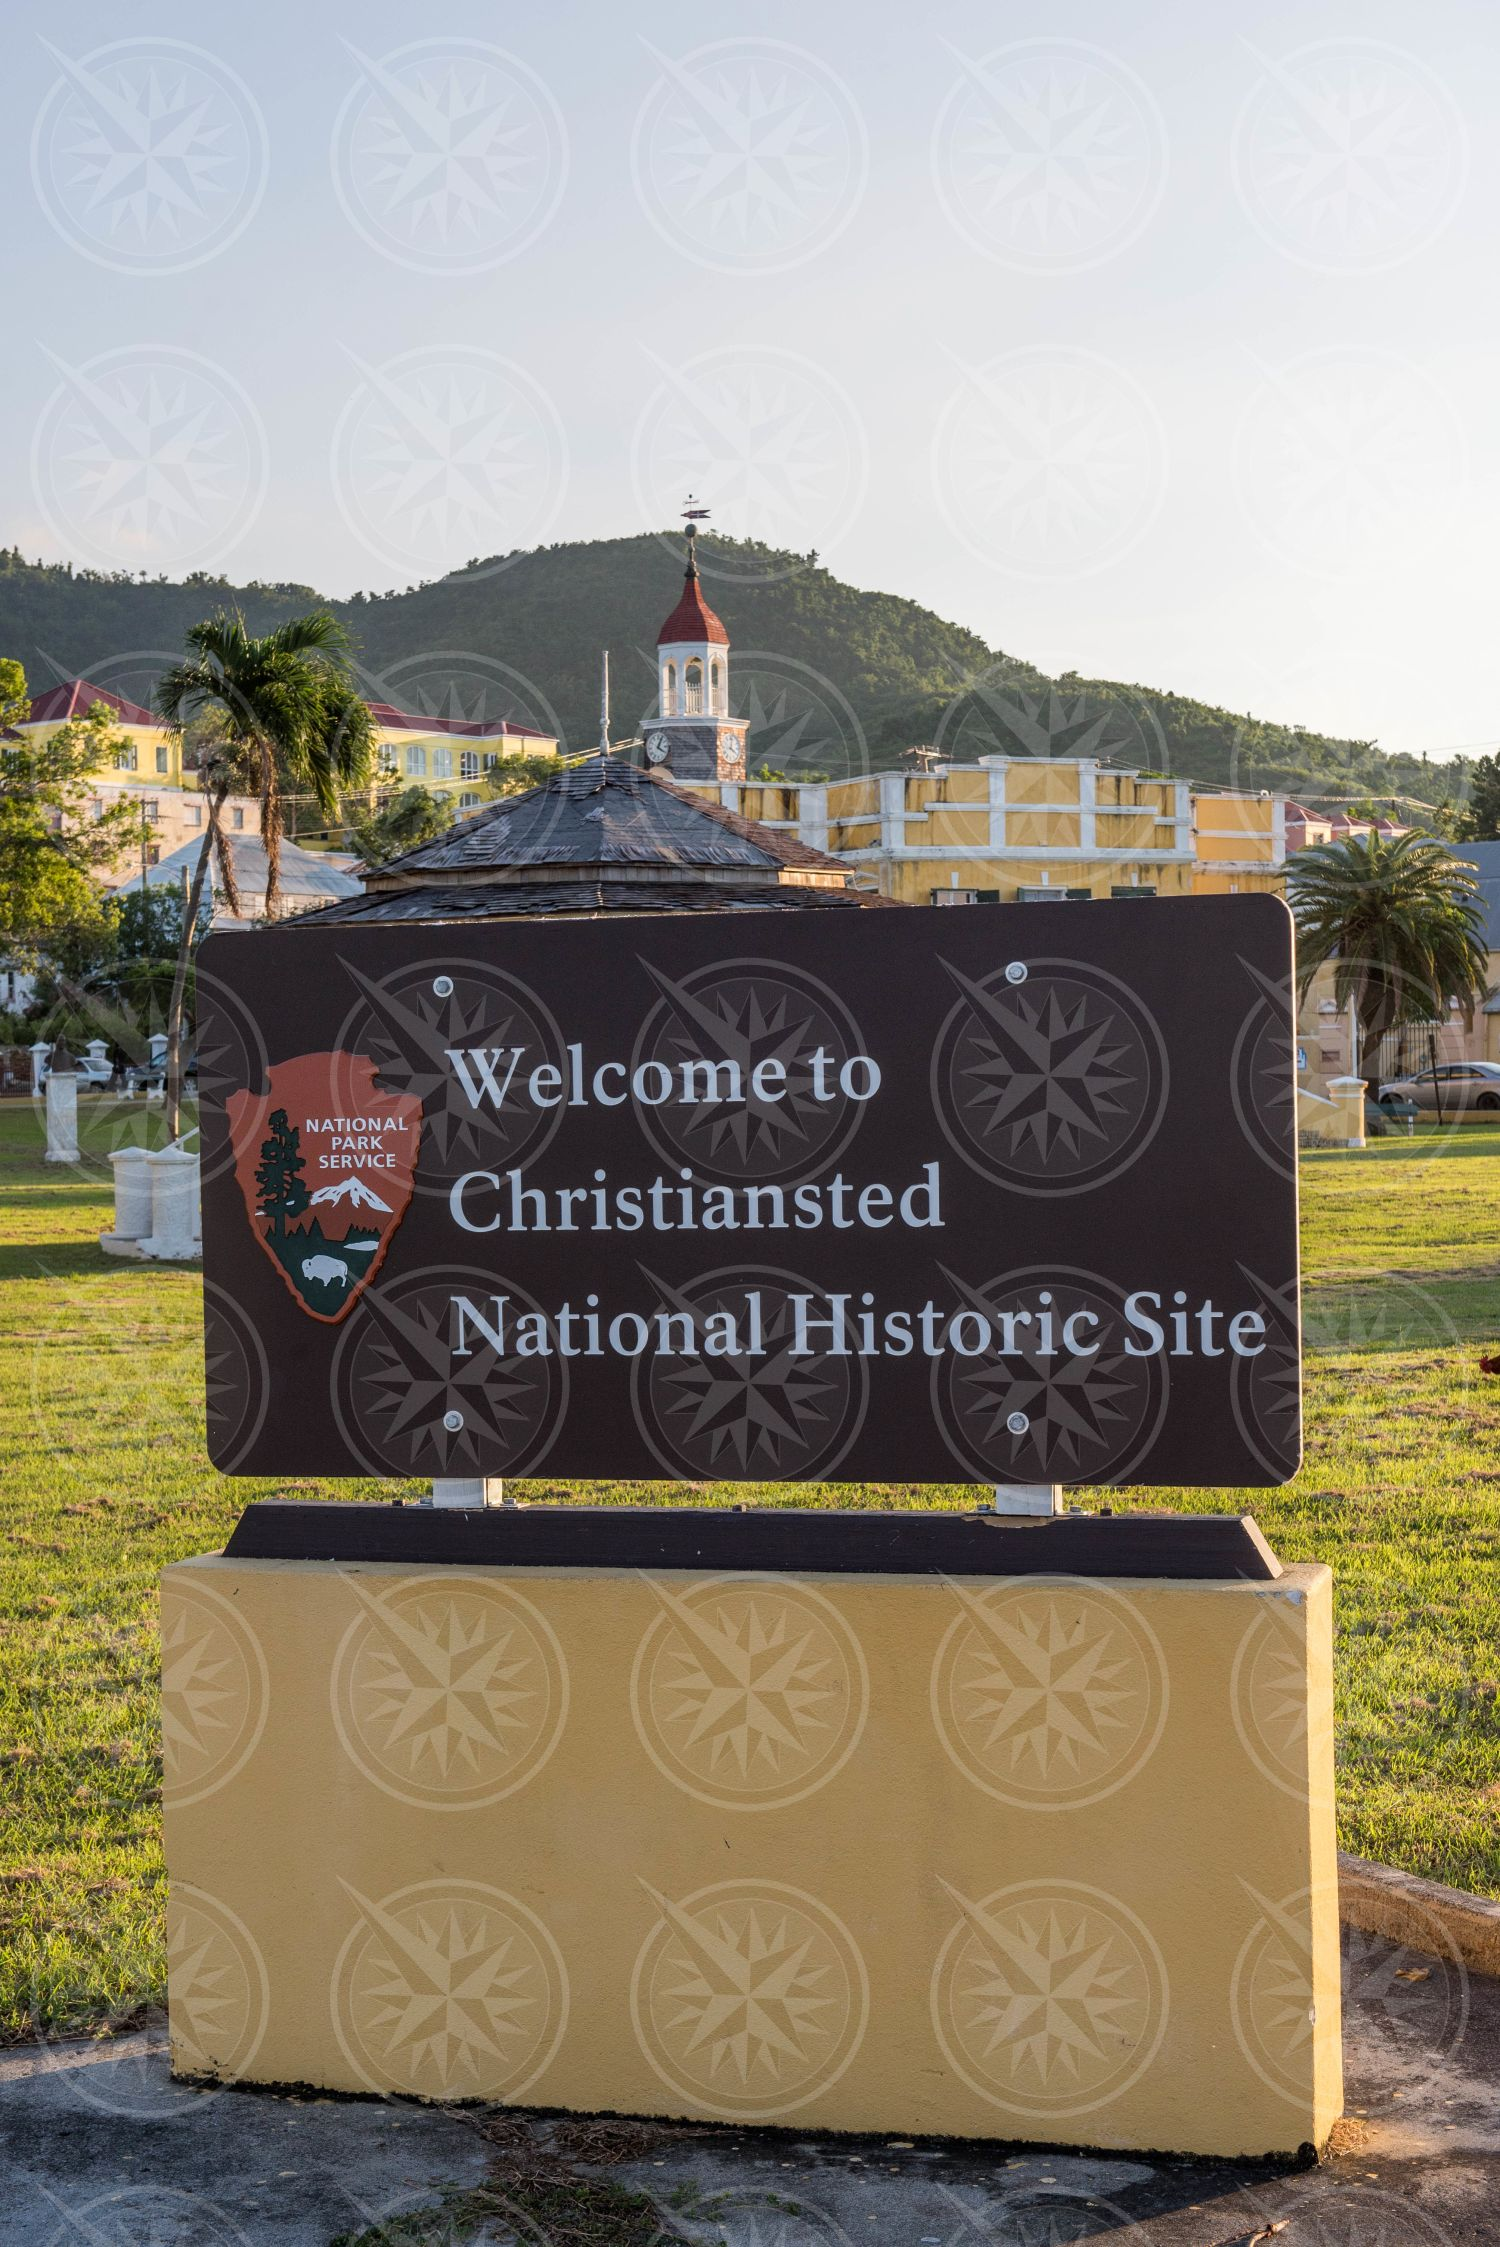 Christiansted National Historic Site sign